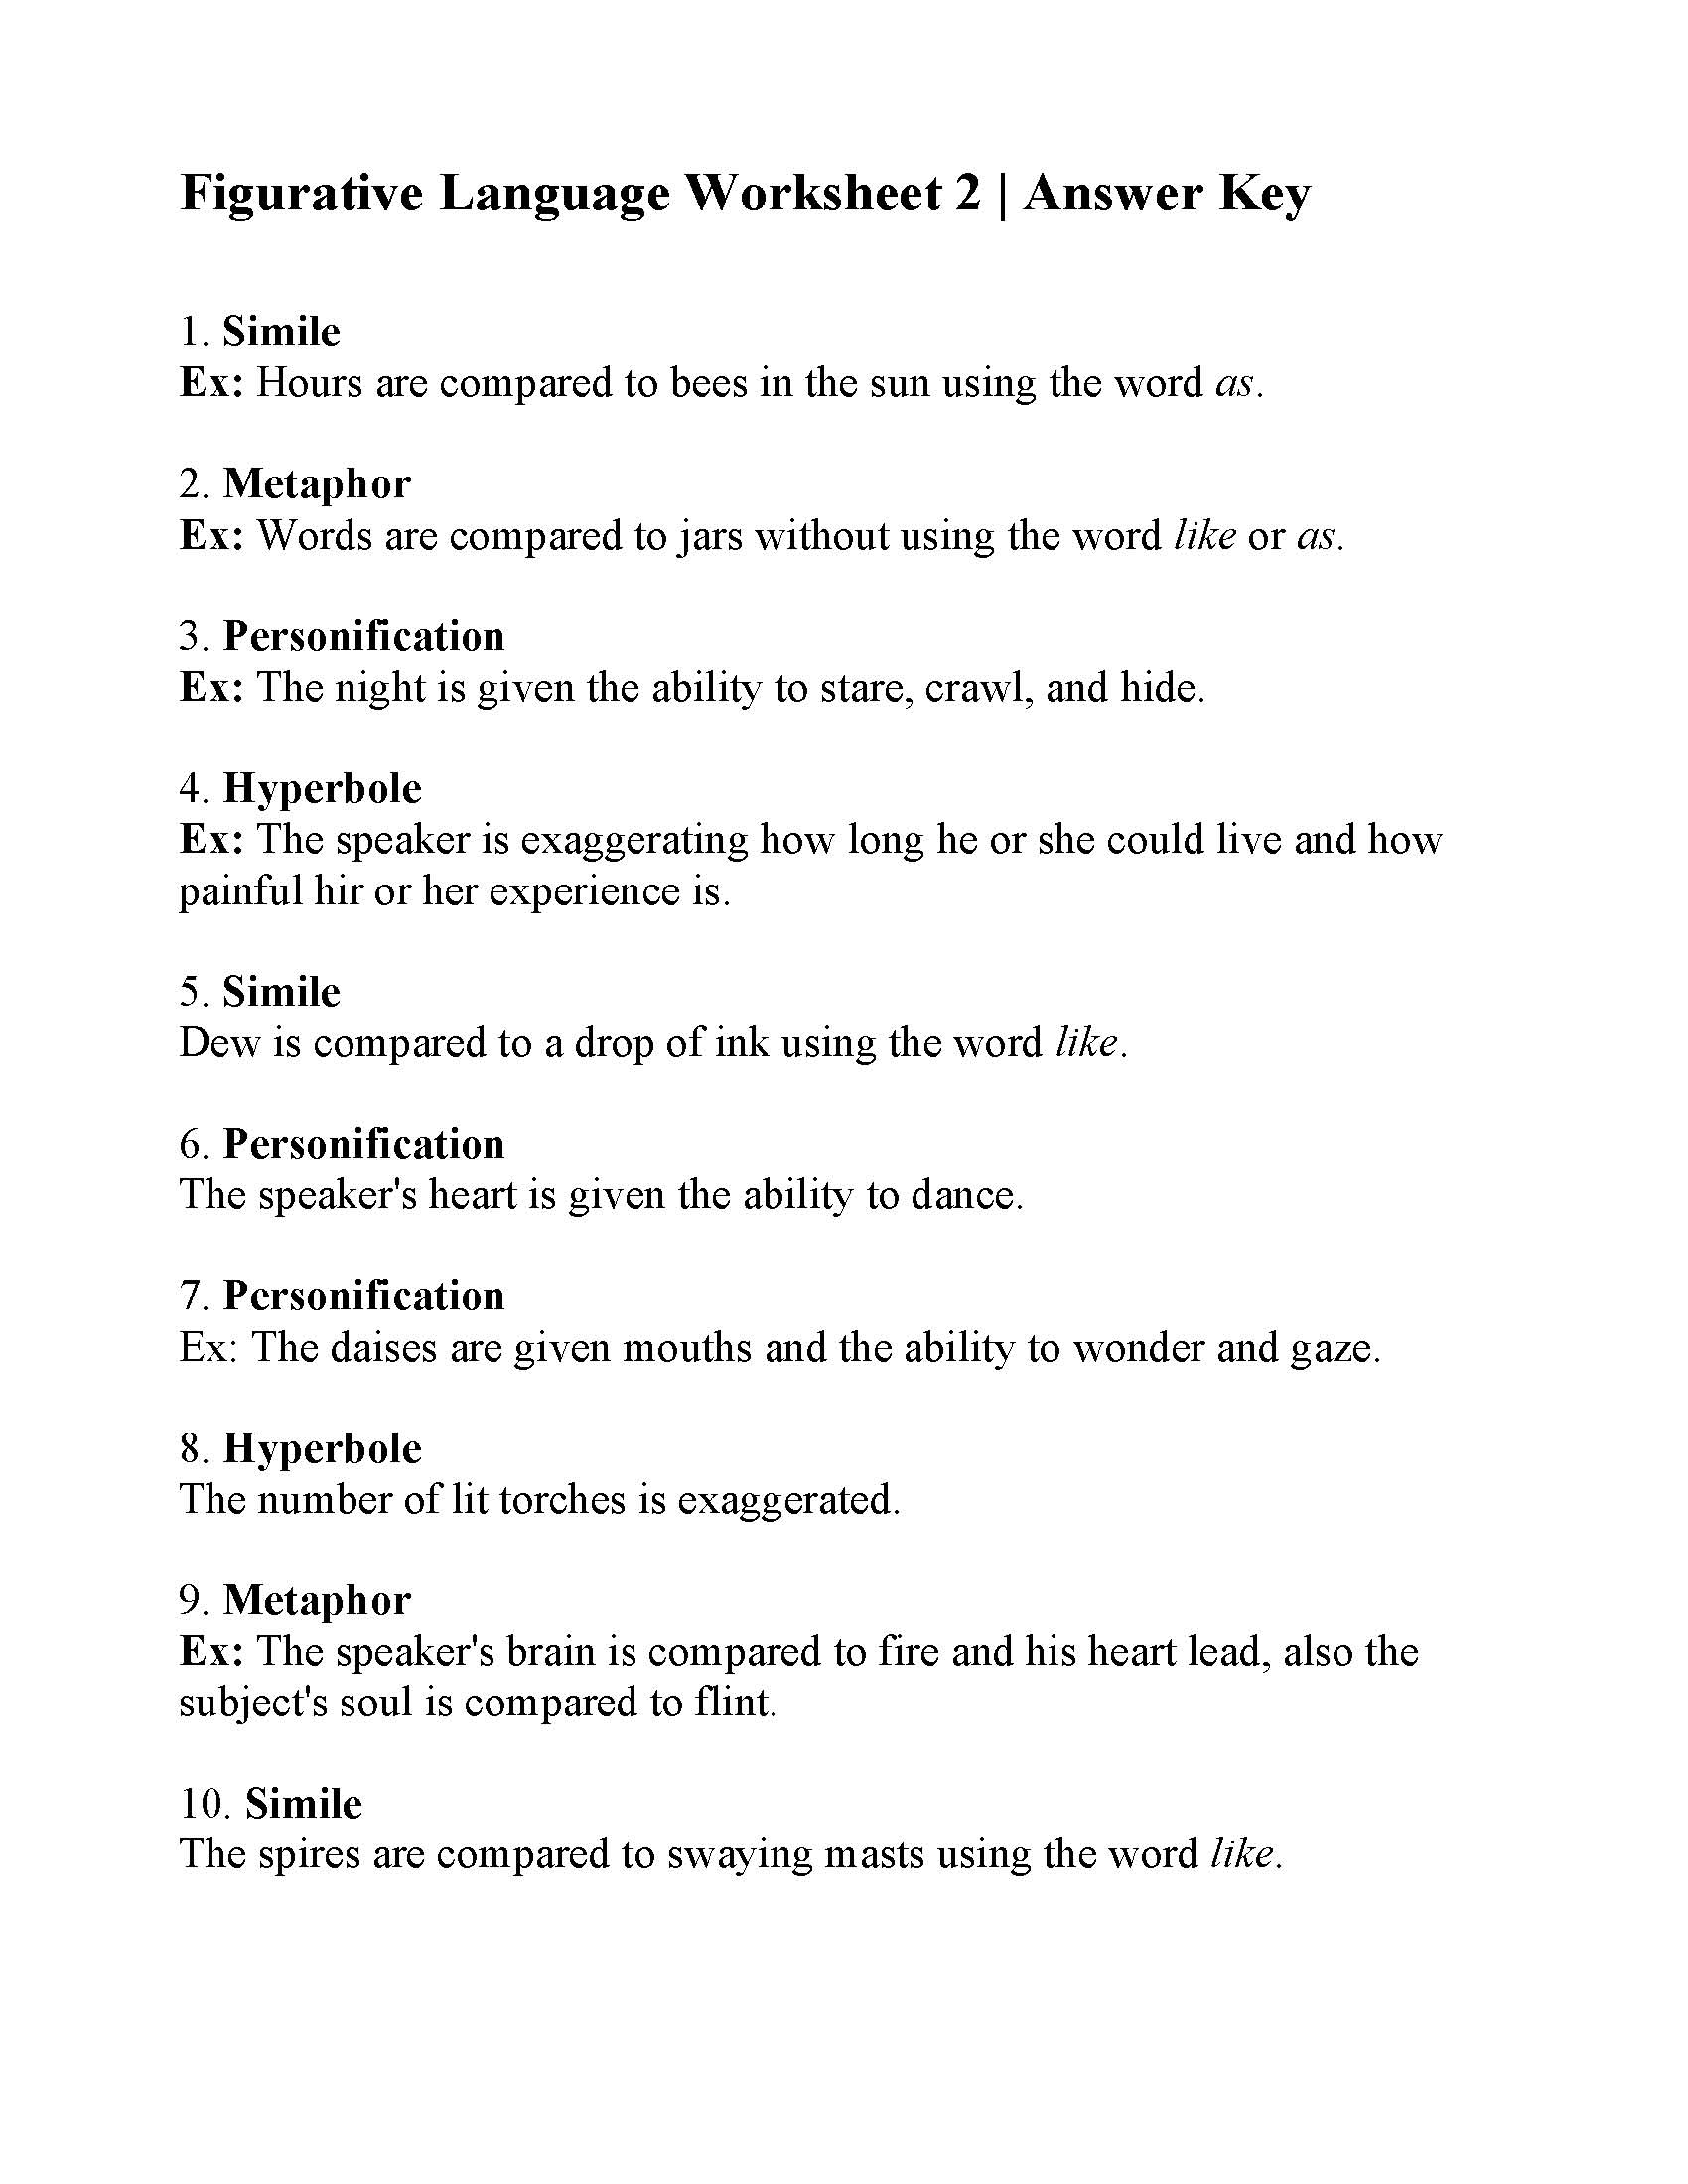 Figurative Language Worksheet 2